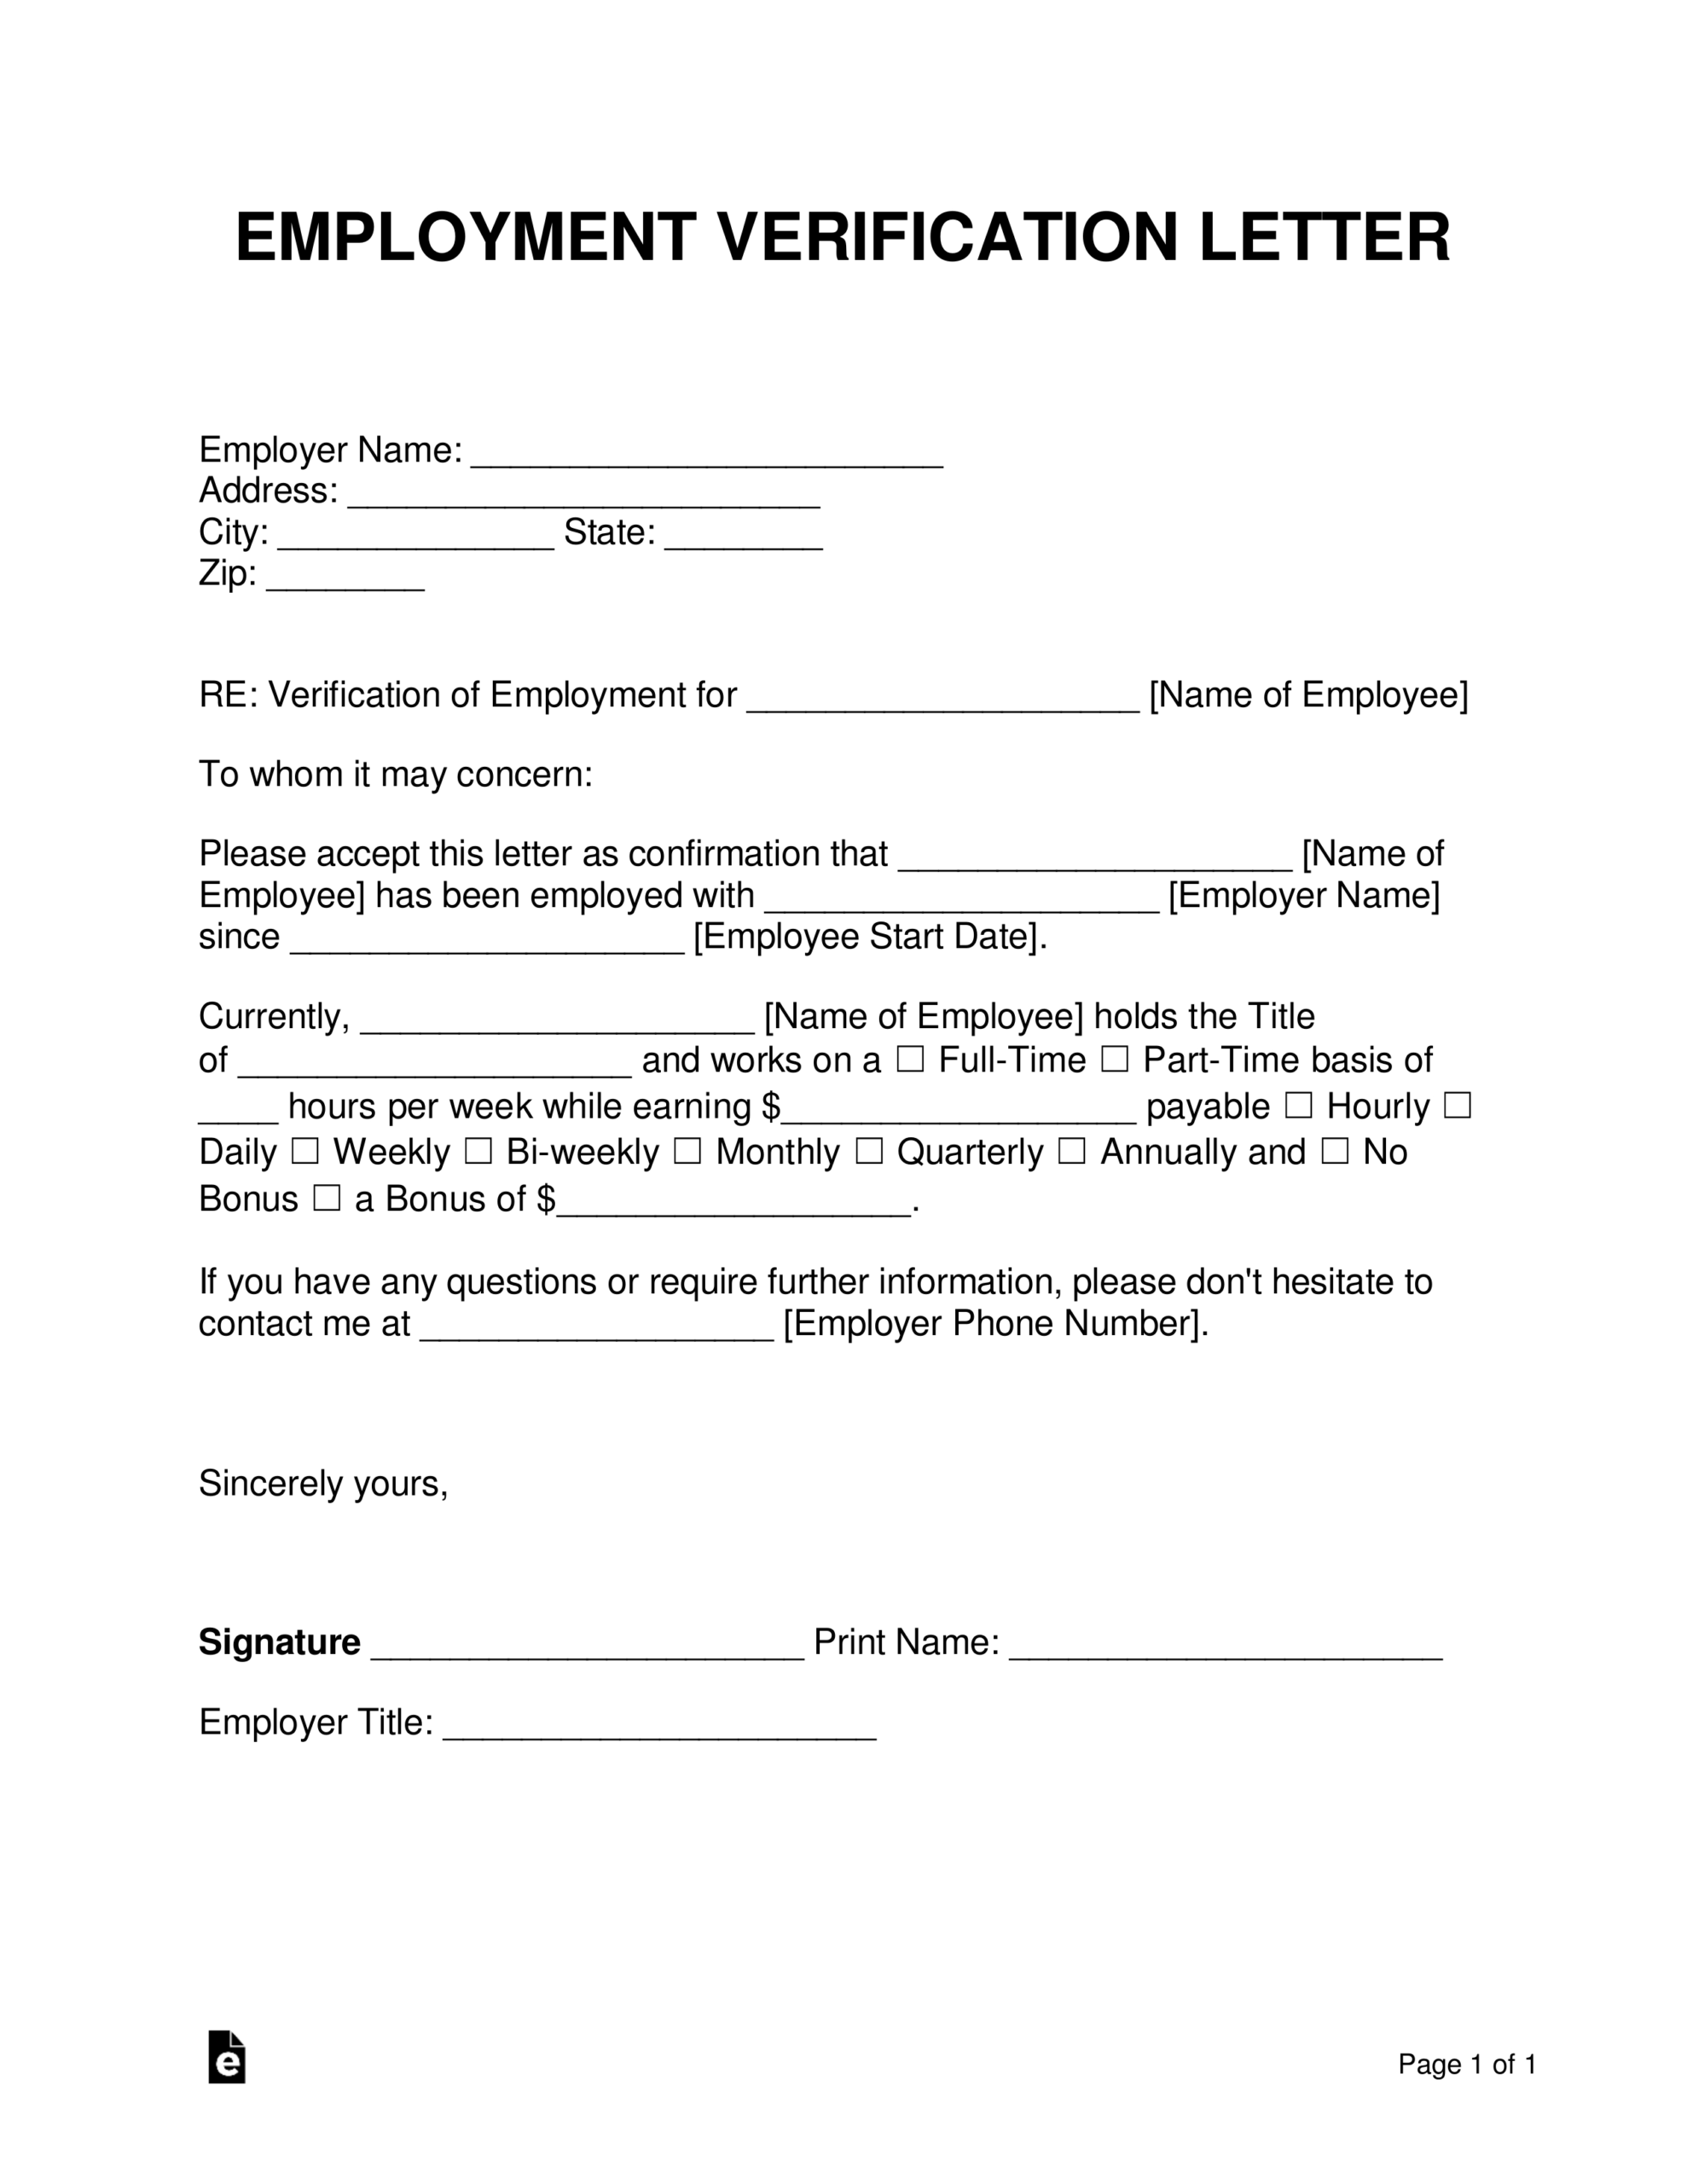 Free Employment (Income) Verification Letter - Pdf   Word